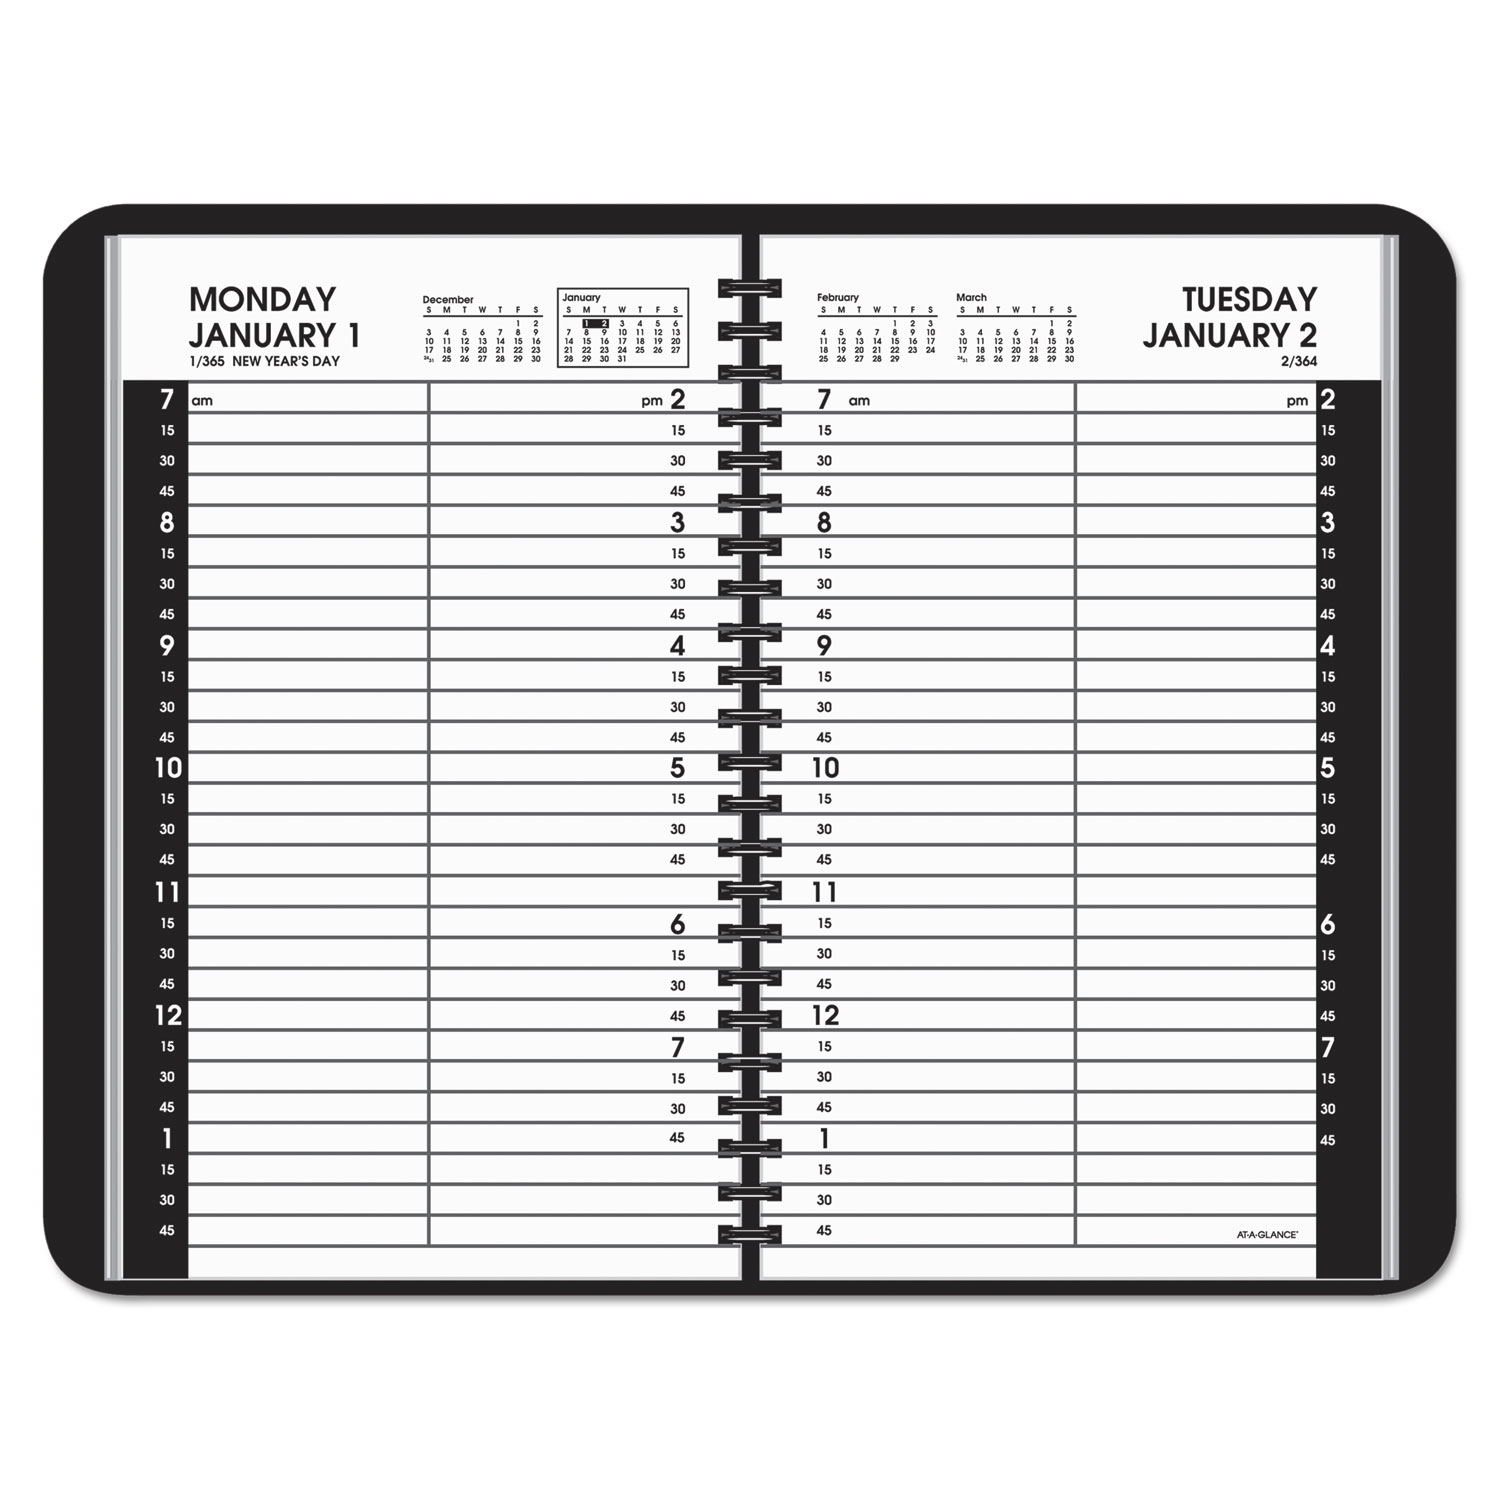 Daily Appointment Book With 15 Minute Appointments By At A Glance Aag